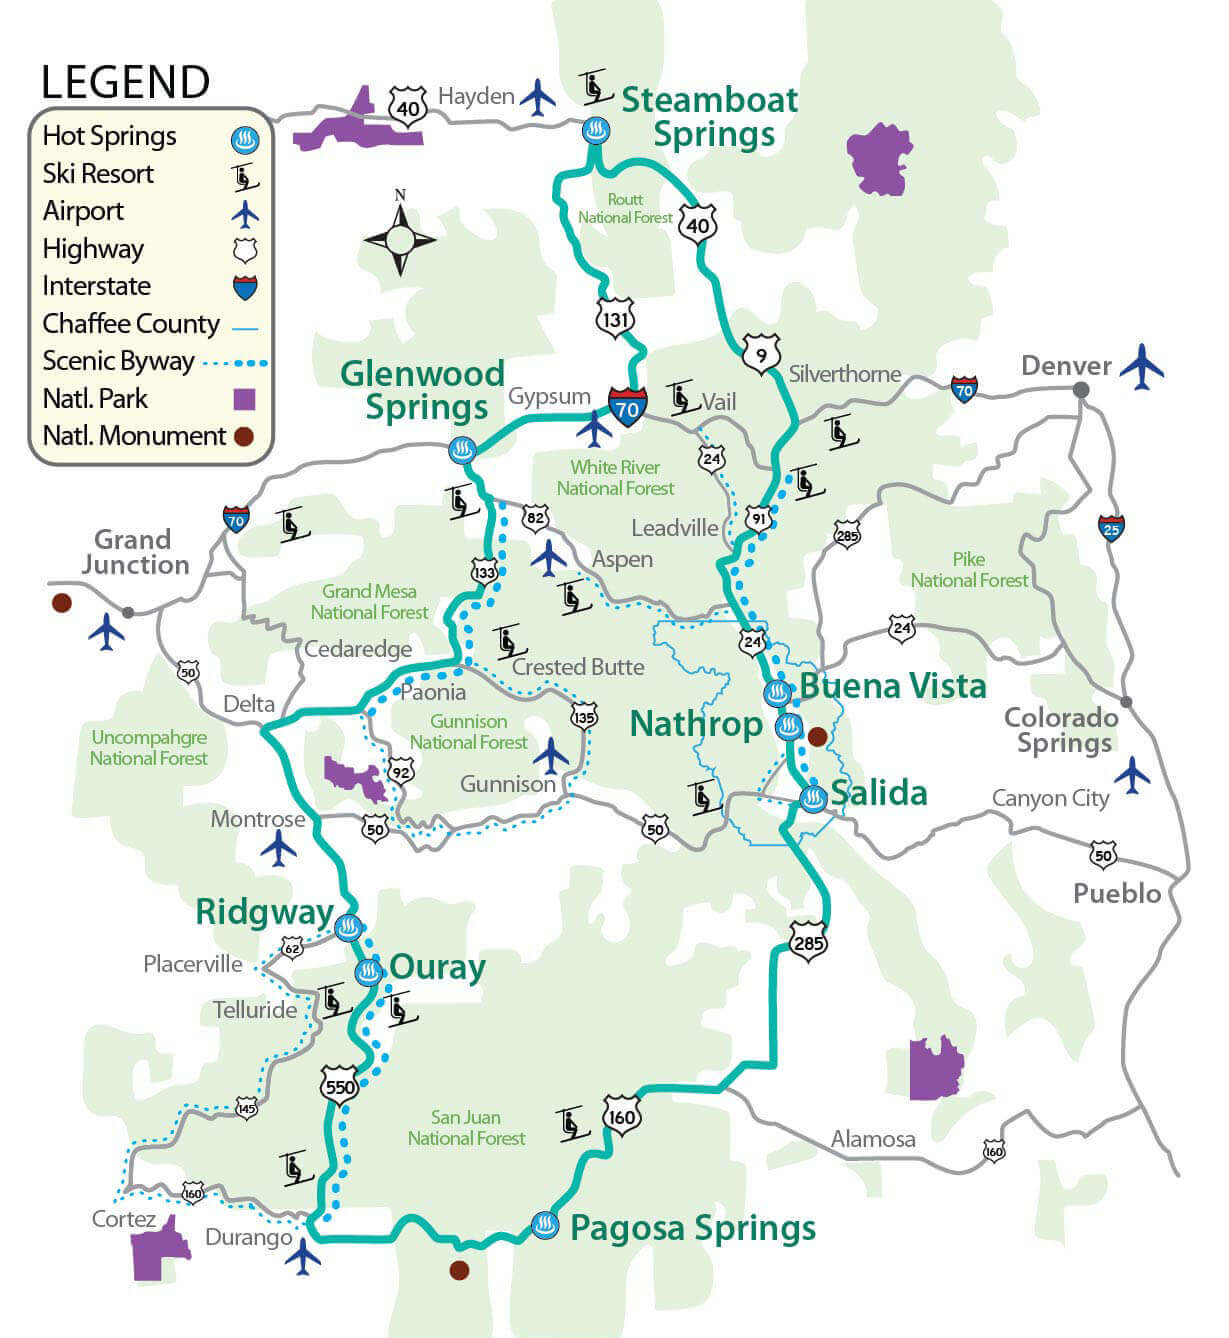 Colorado Historic Hot Springs Loop | Glenwood Springs on west vail map, pagosa map, manitou springs co map, montrose map, greenwood village map, denver map, eagle map, glenwood canyon map, colorado map, broomfield map, newport news map, las vegas map, arvada map, lochbuie map, aspen map, fairfield map, saguache map, steamboat area map, norman map,